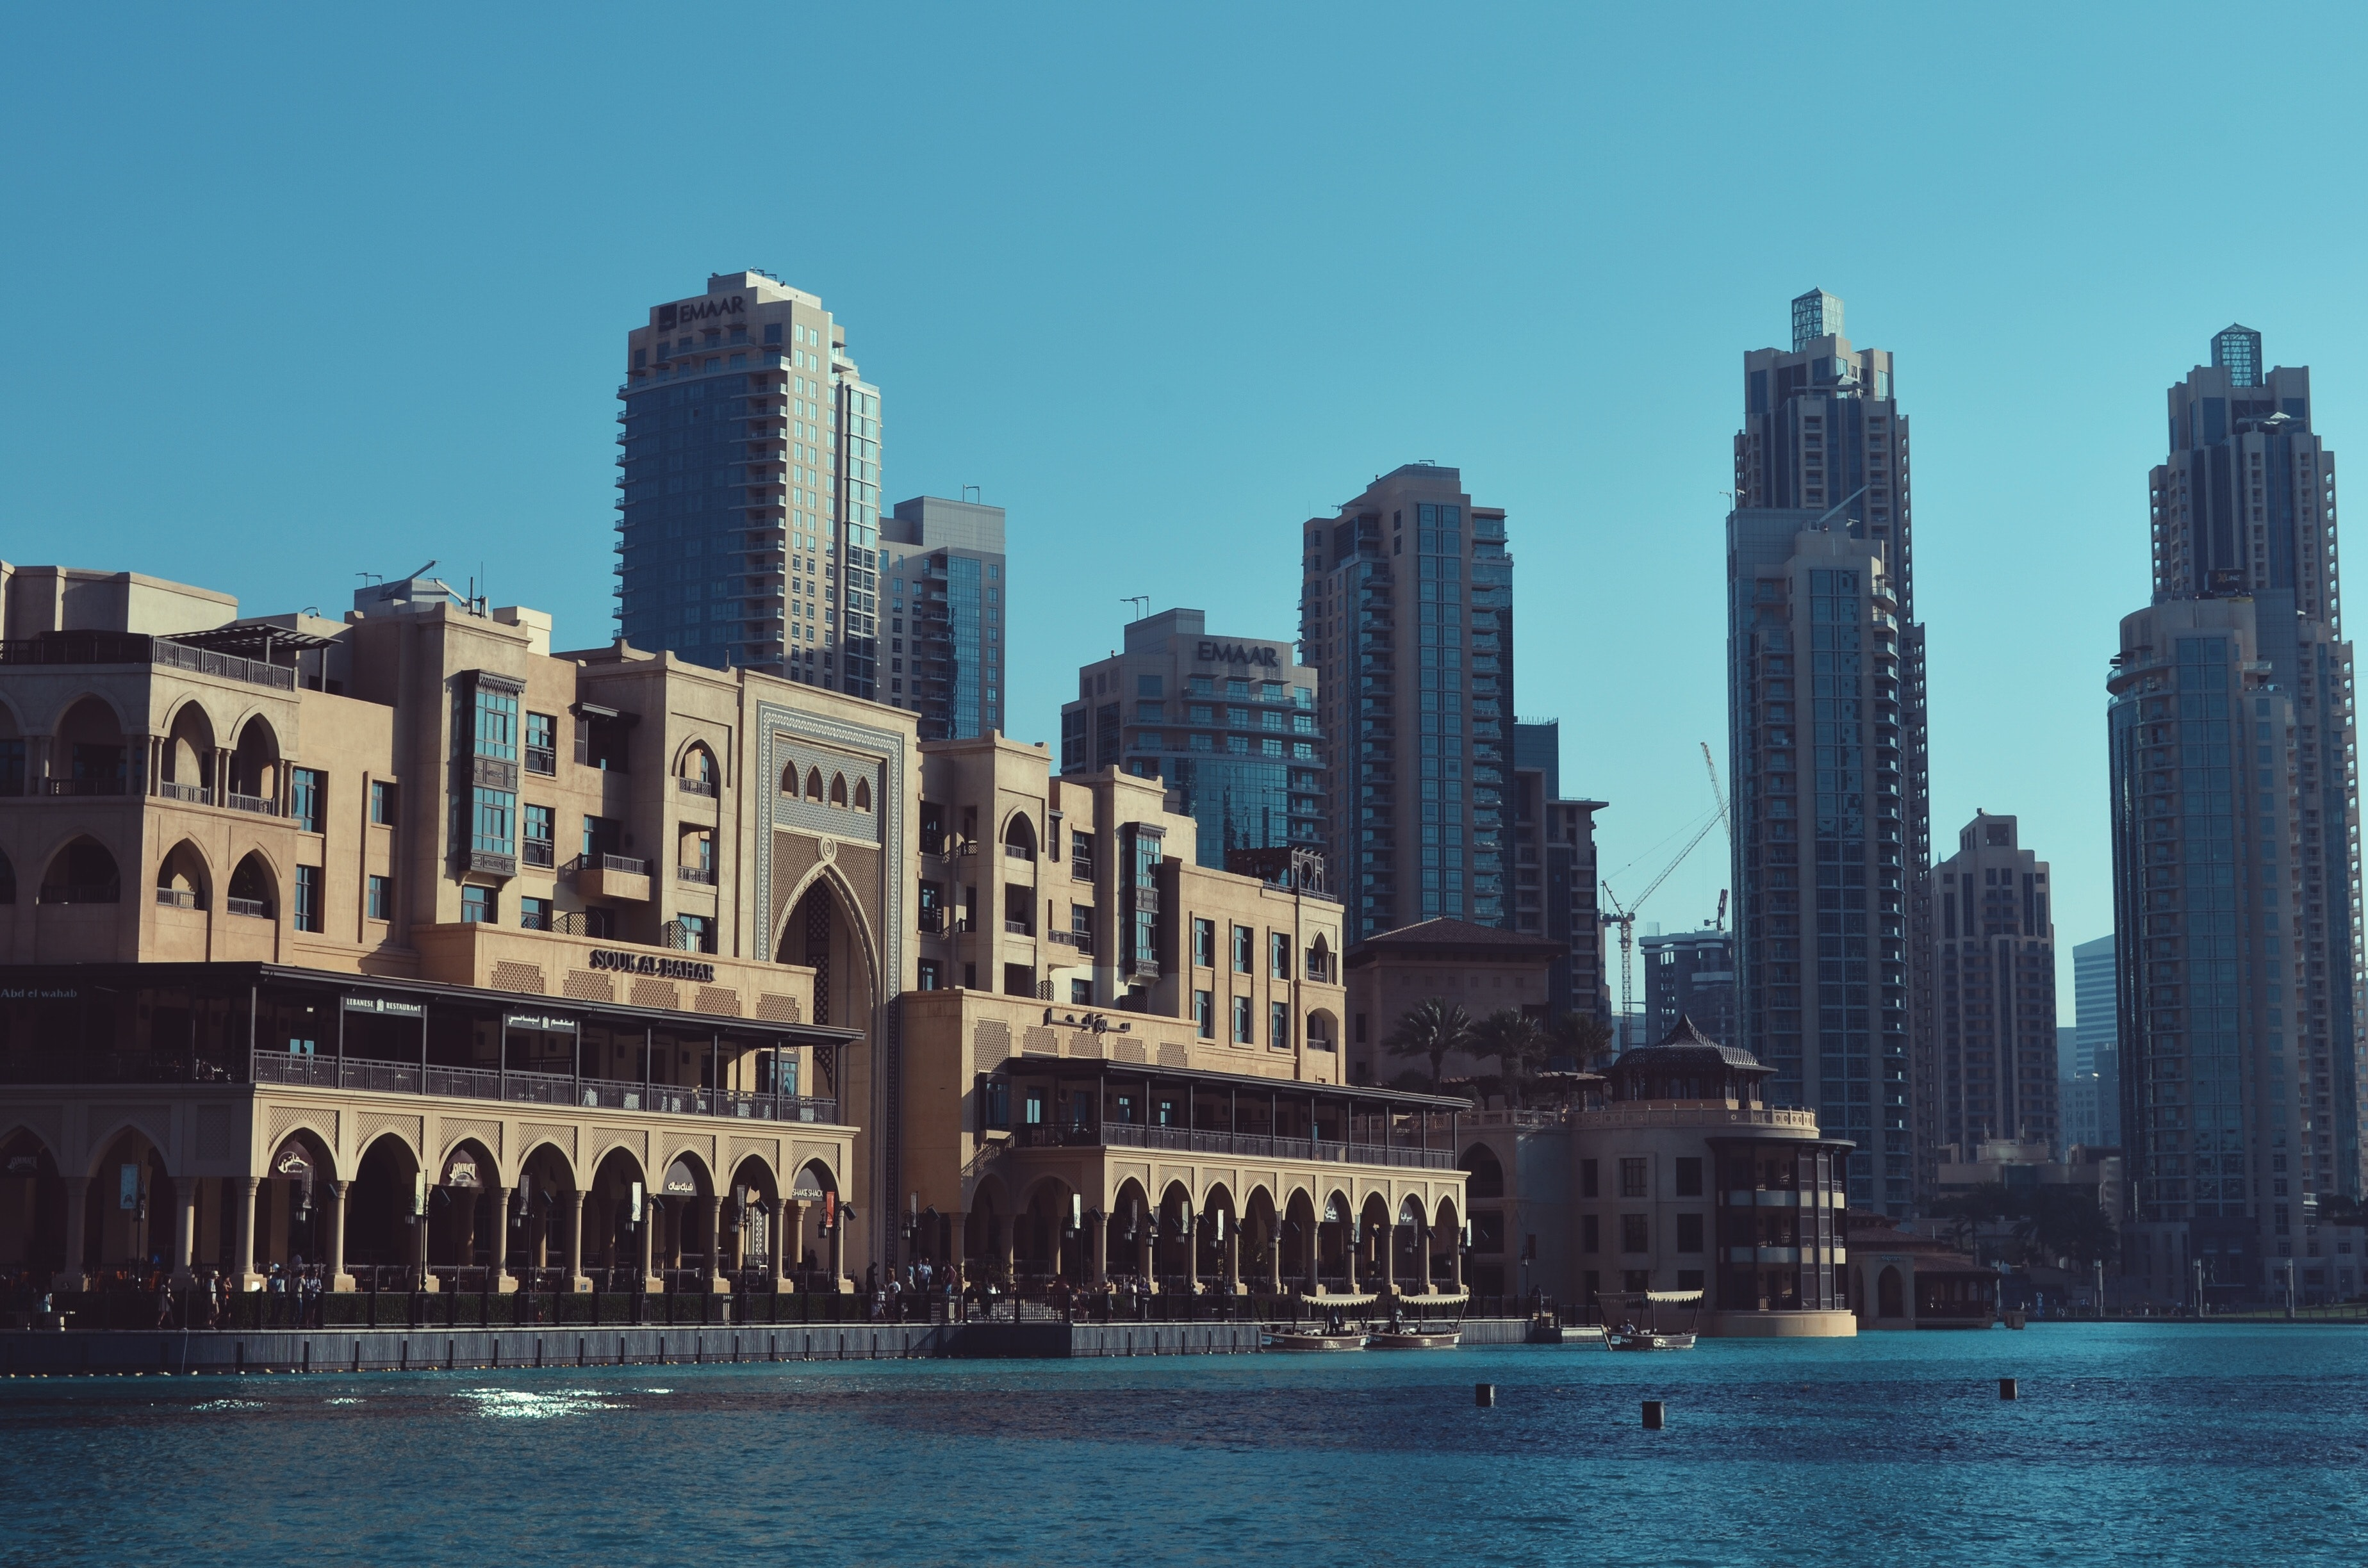 City at Waterfront, Architecture, Office, Water, Urban, HQ Photo